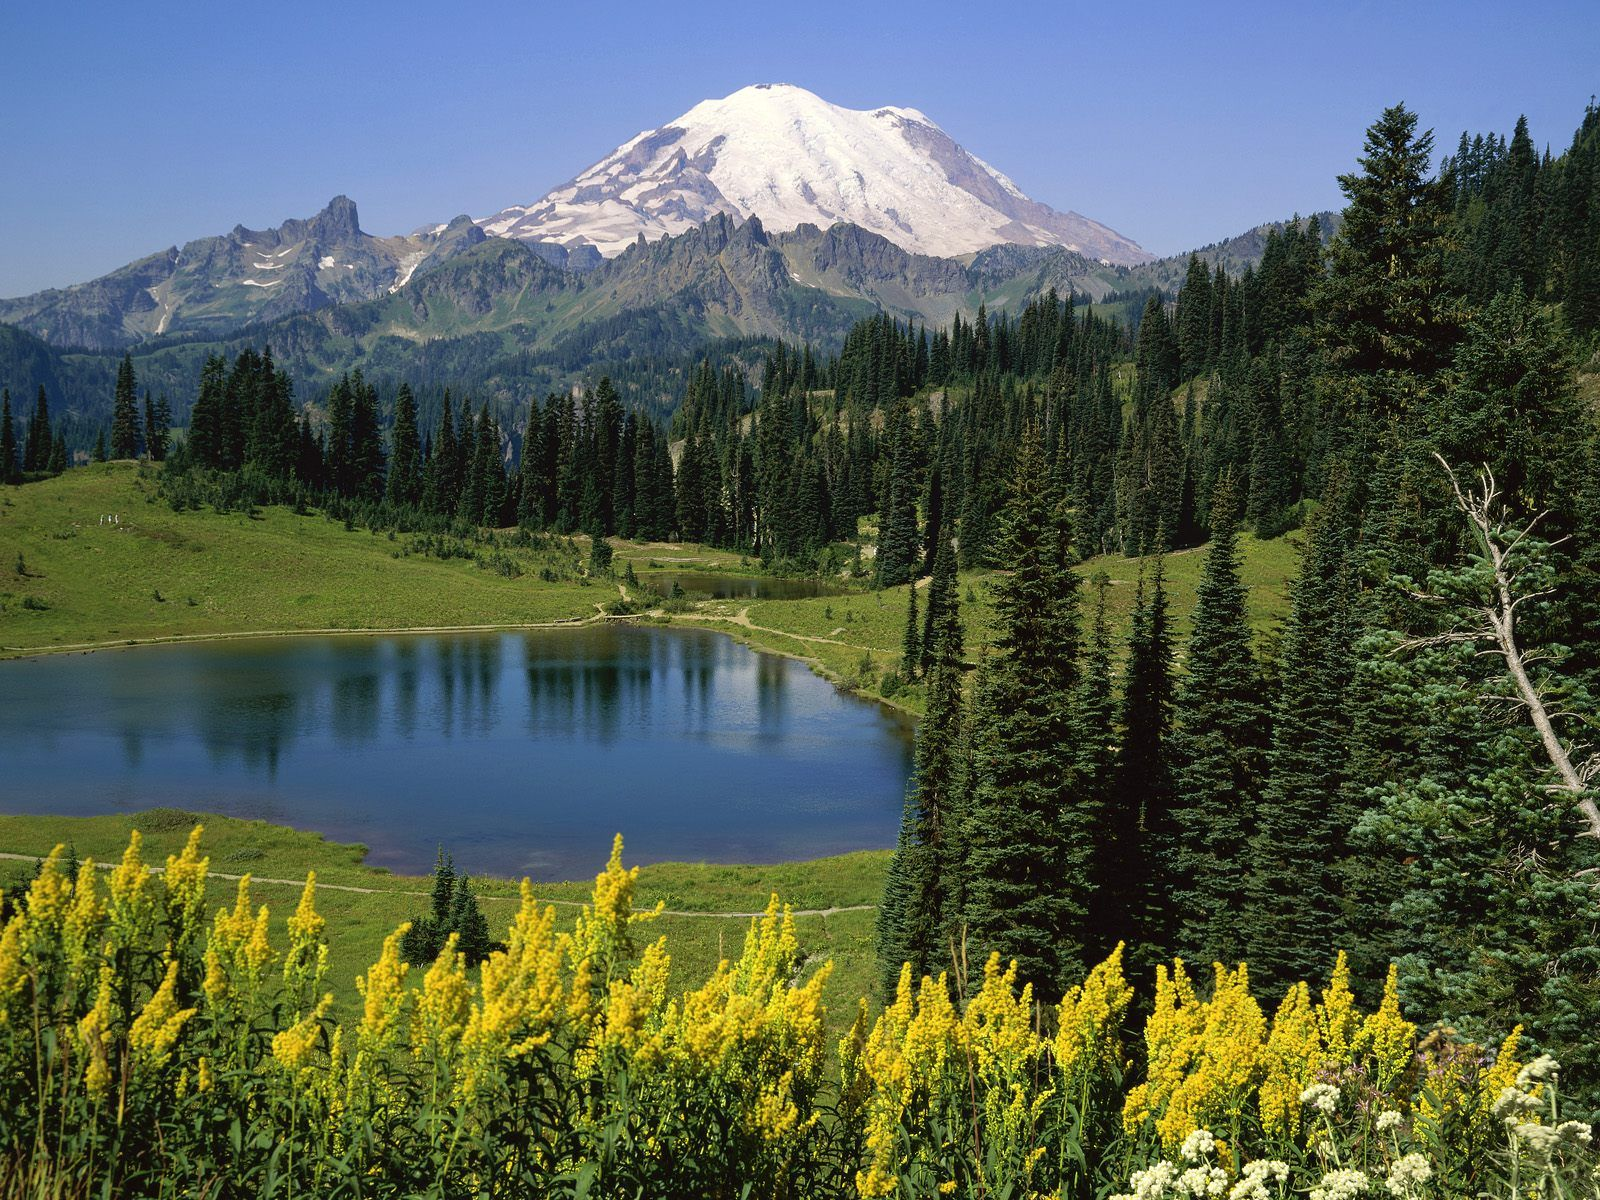 washington state photos nature | Fun Things to Do in Washington State |  Smart Destinations